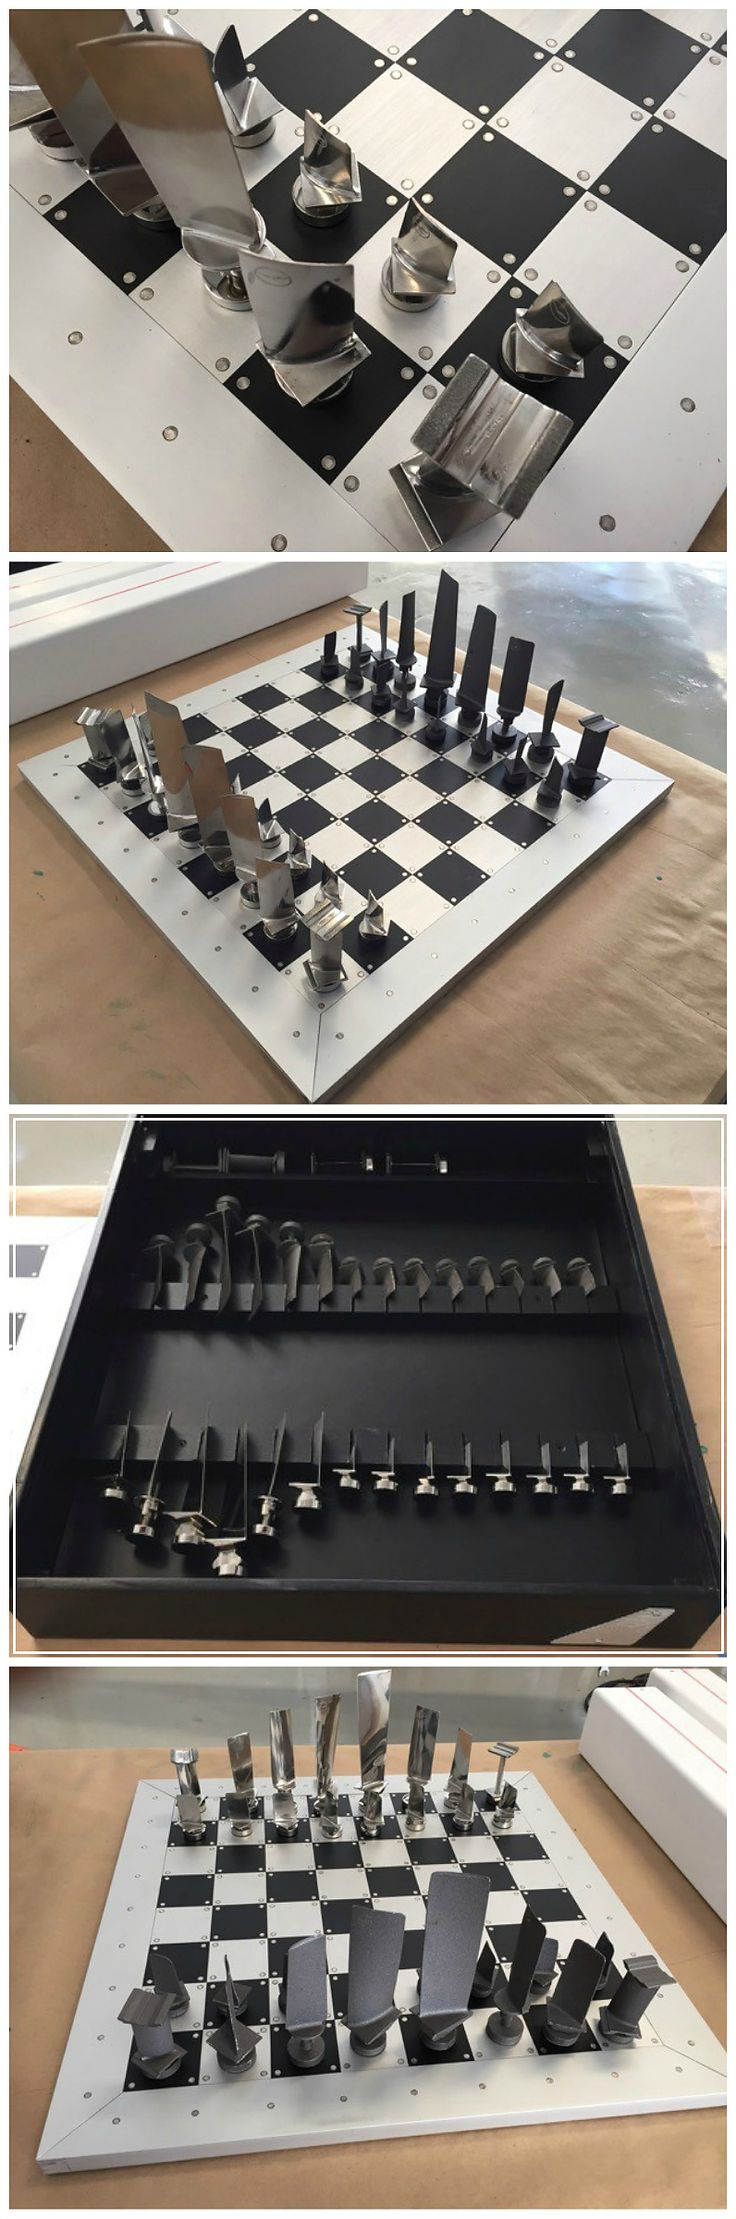 58 Best Beautiful Chess Sets Pieces Boards Gift Ideas